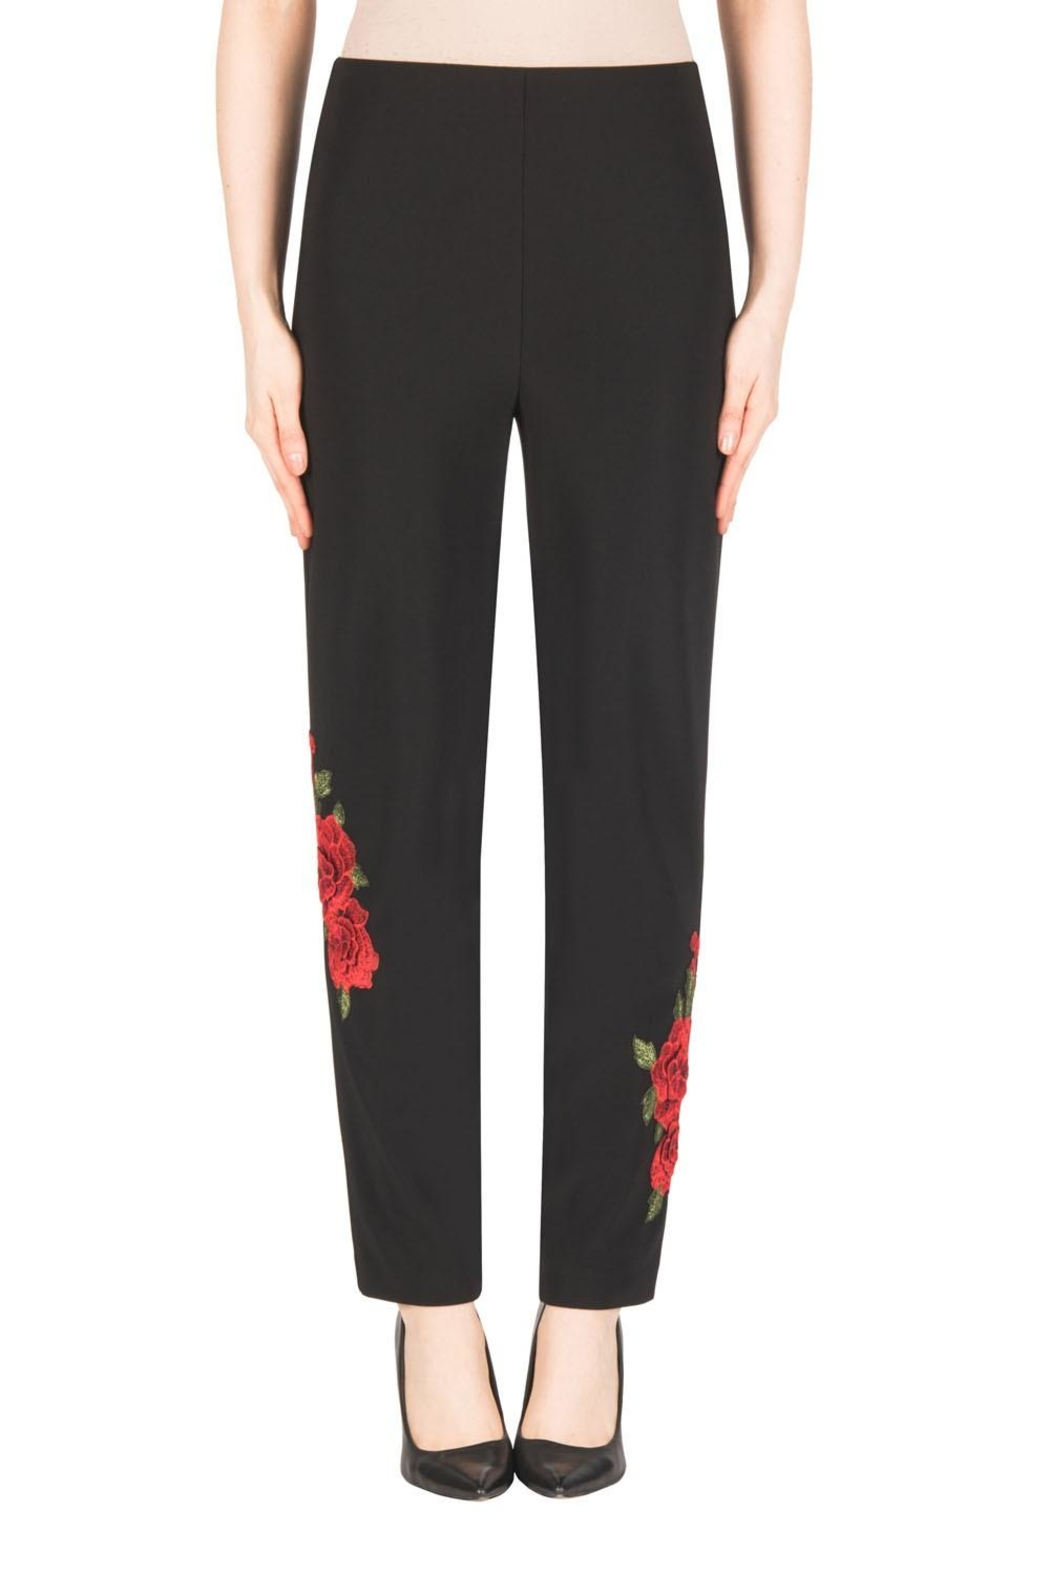 Joseph Ribkoff Floral Embroidered Pant - Main Image